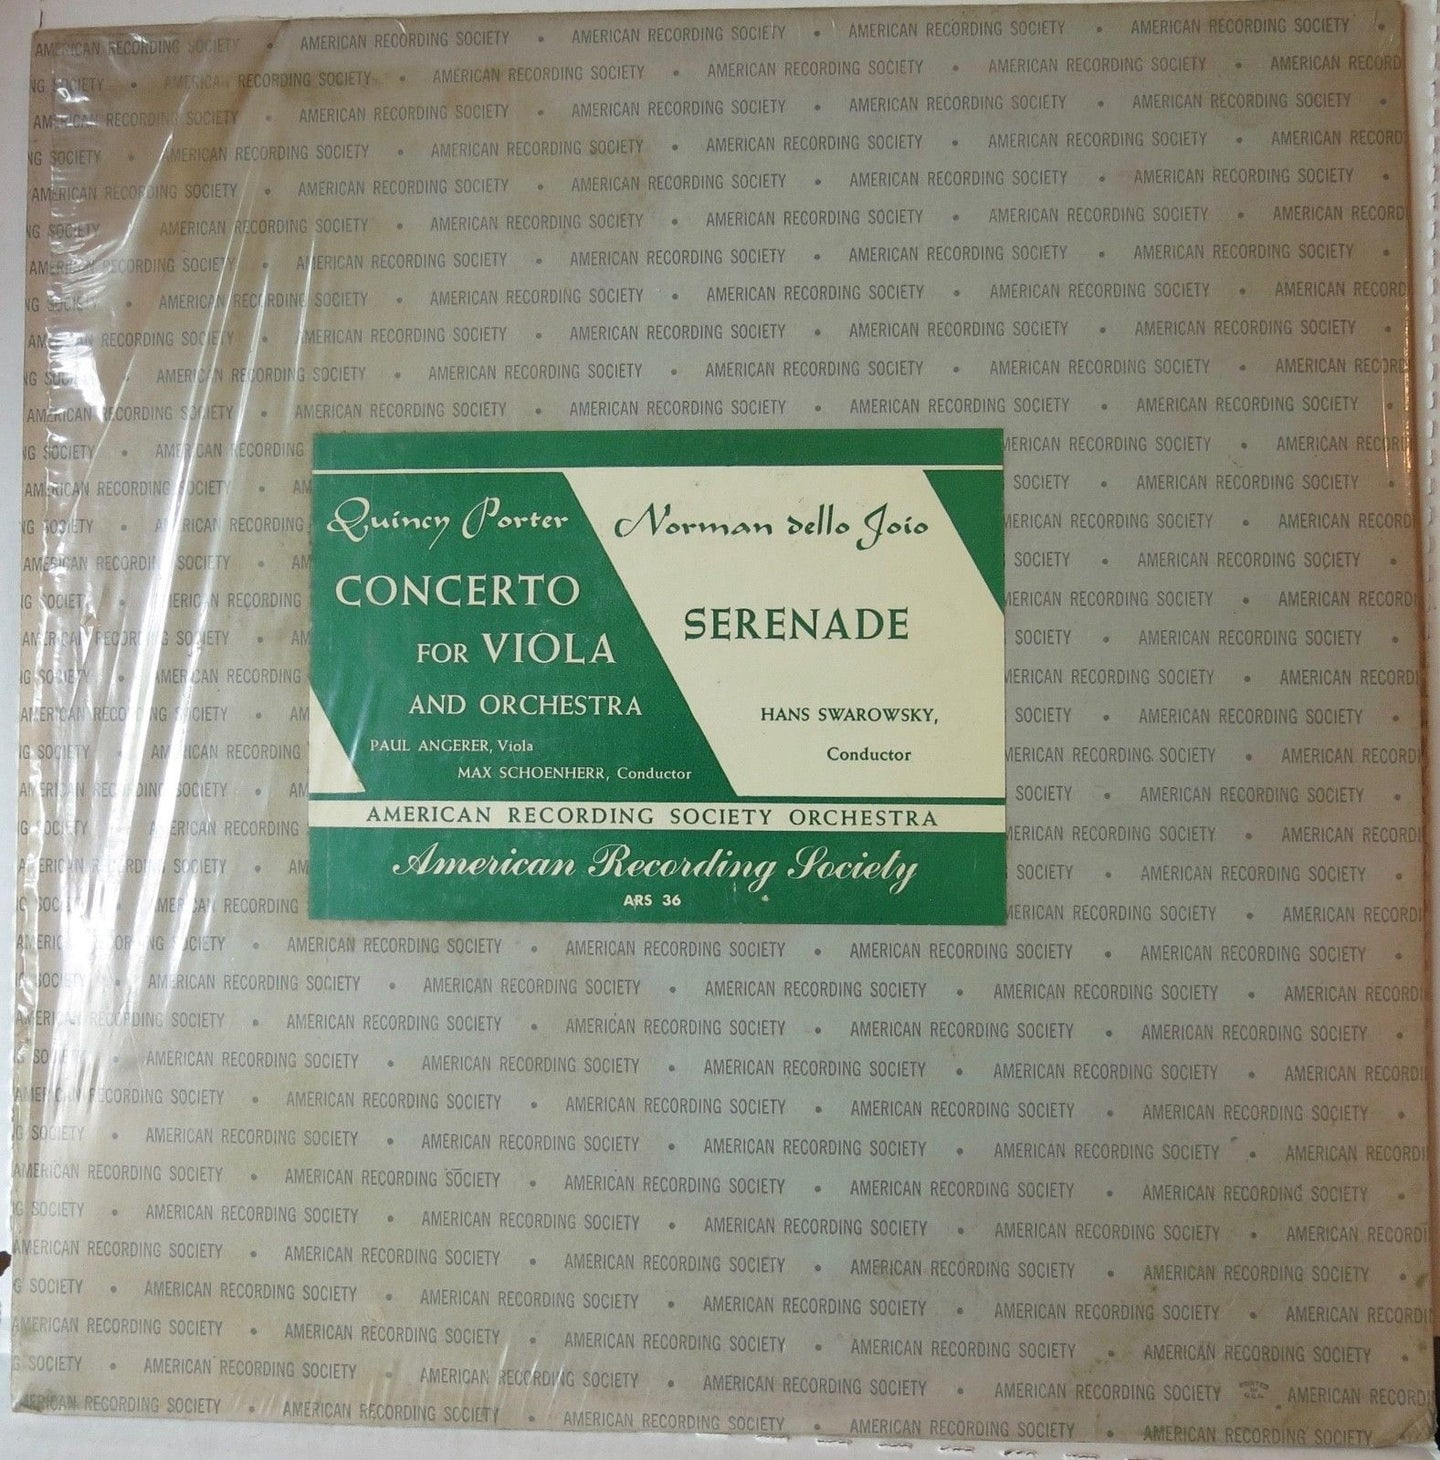 Porter concerto for viola and orchestra - American Recording Society